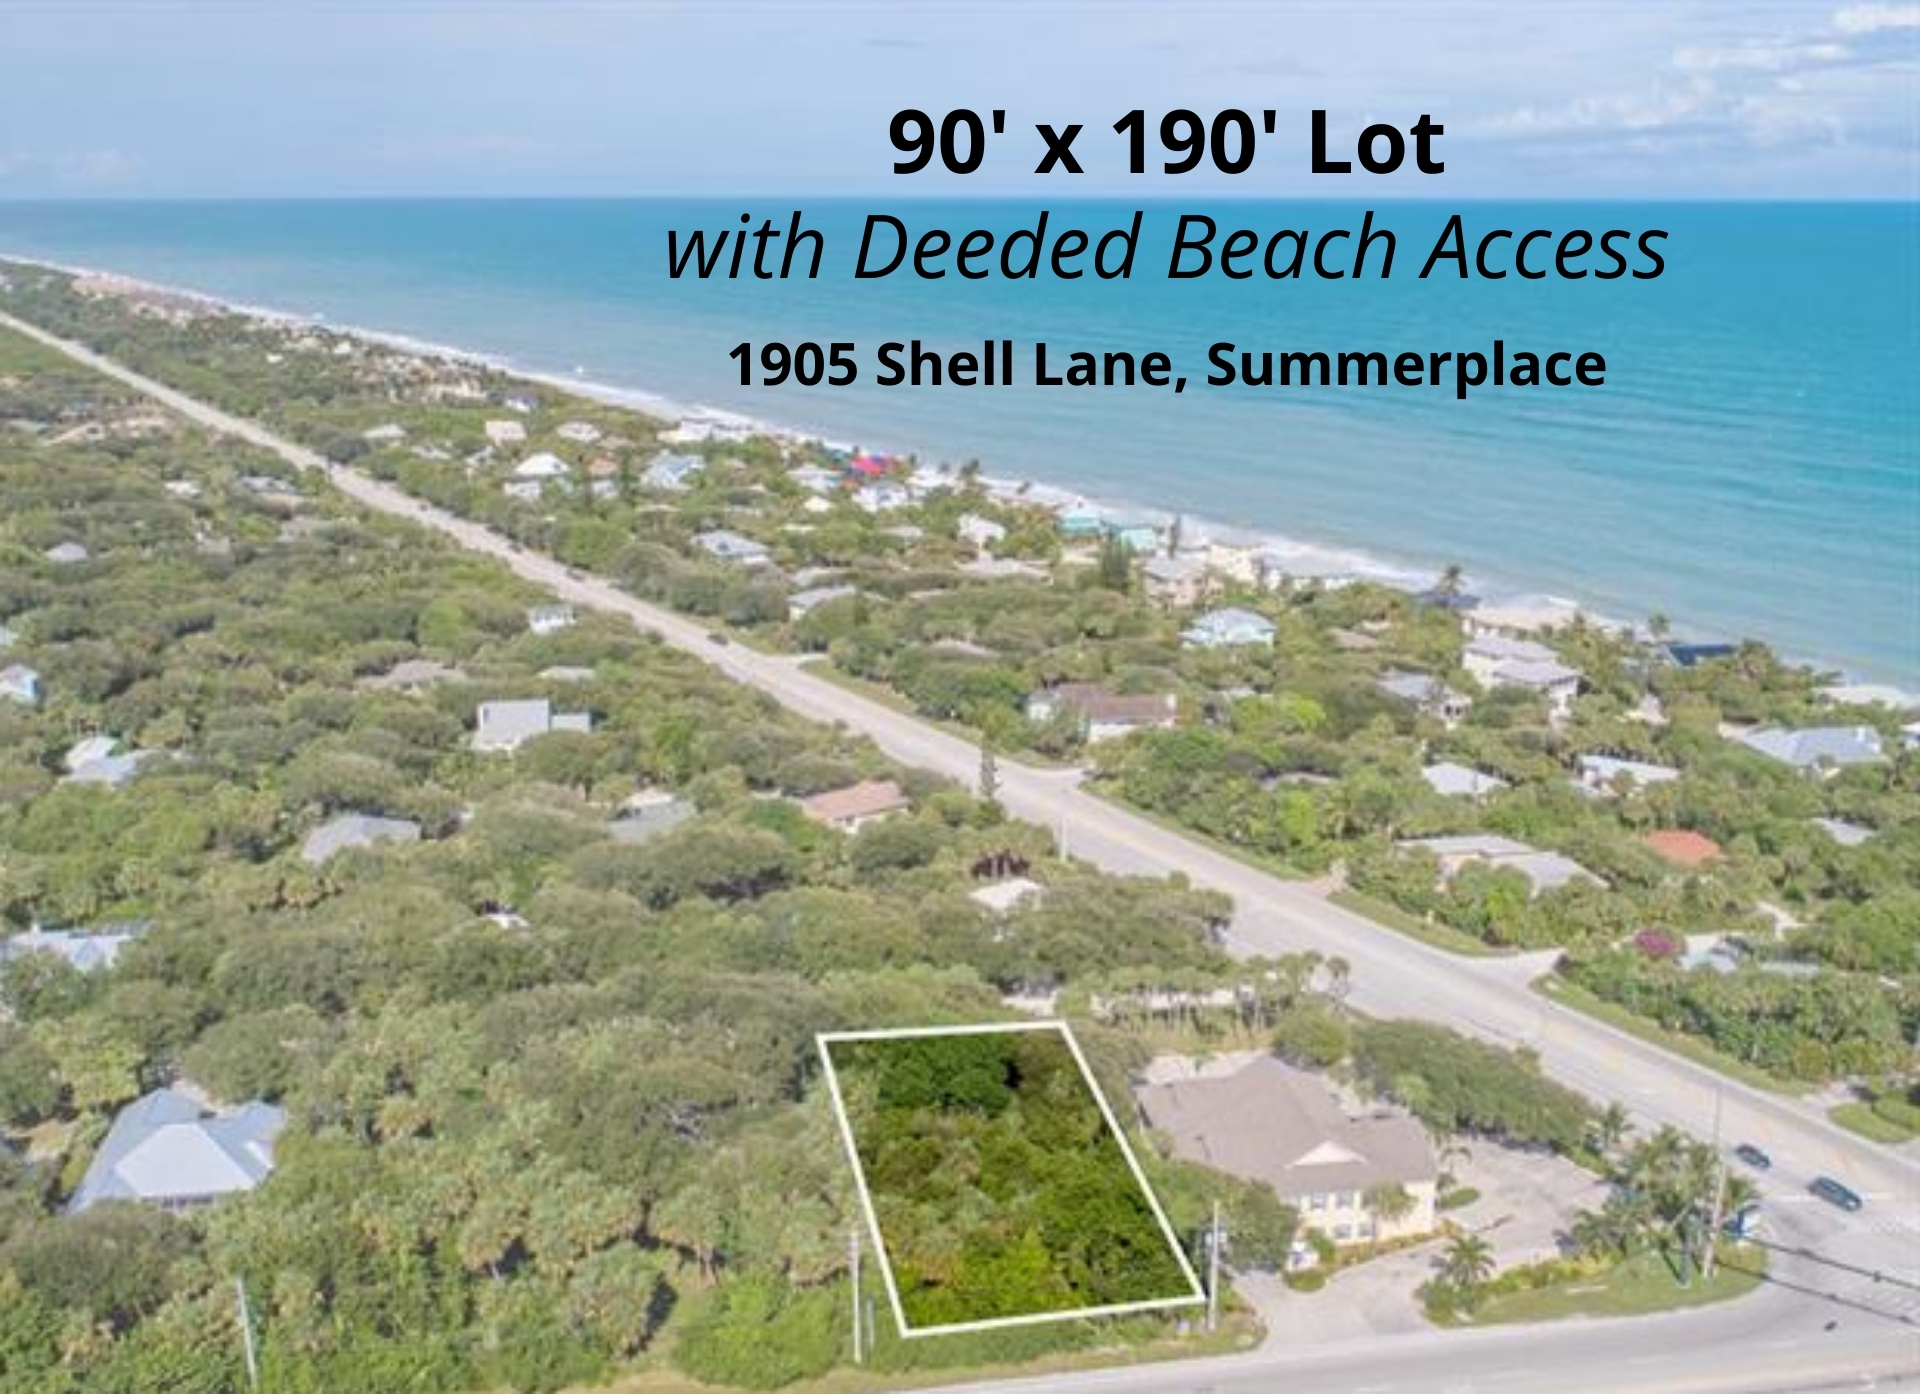 Waterfront estate for sale on Marsh Island at 2935 Marsh Island Lane Vero Beach FL 32963